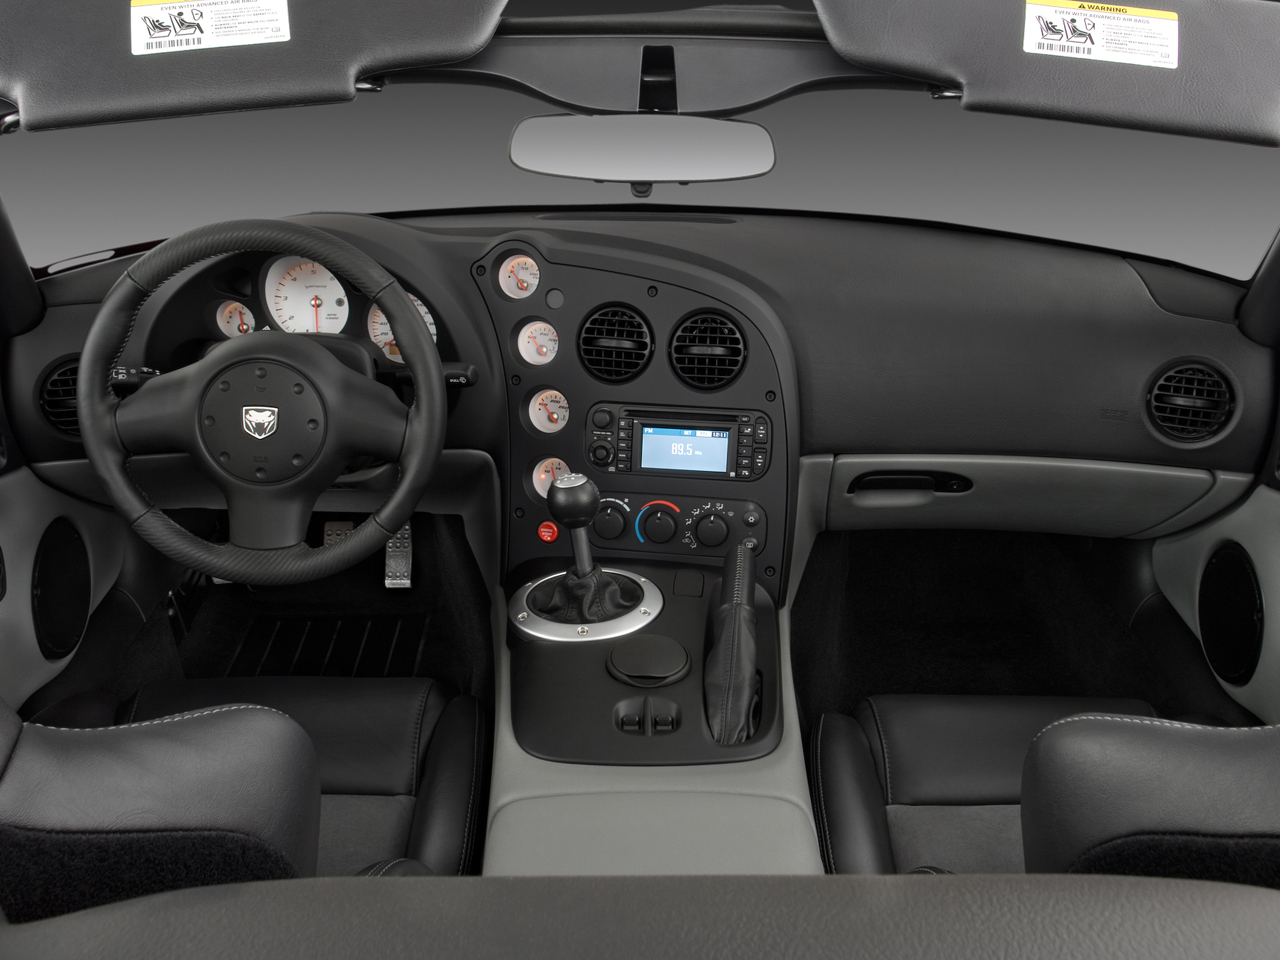 Lone Star Dodge >> 2008 Dodge Viper SRT10 ACR - Latest News, Features, and ...